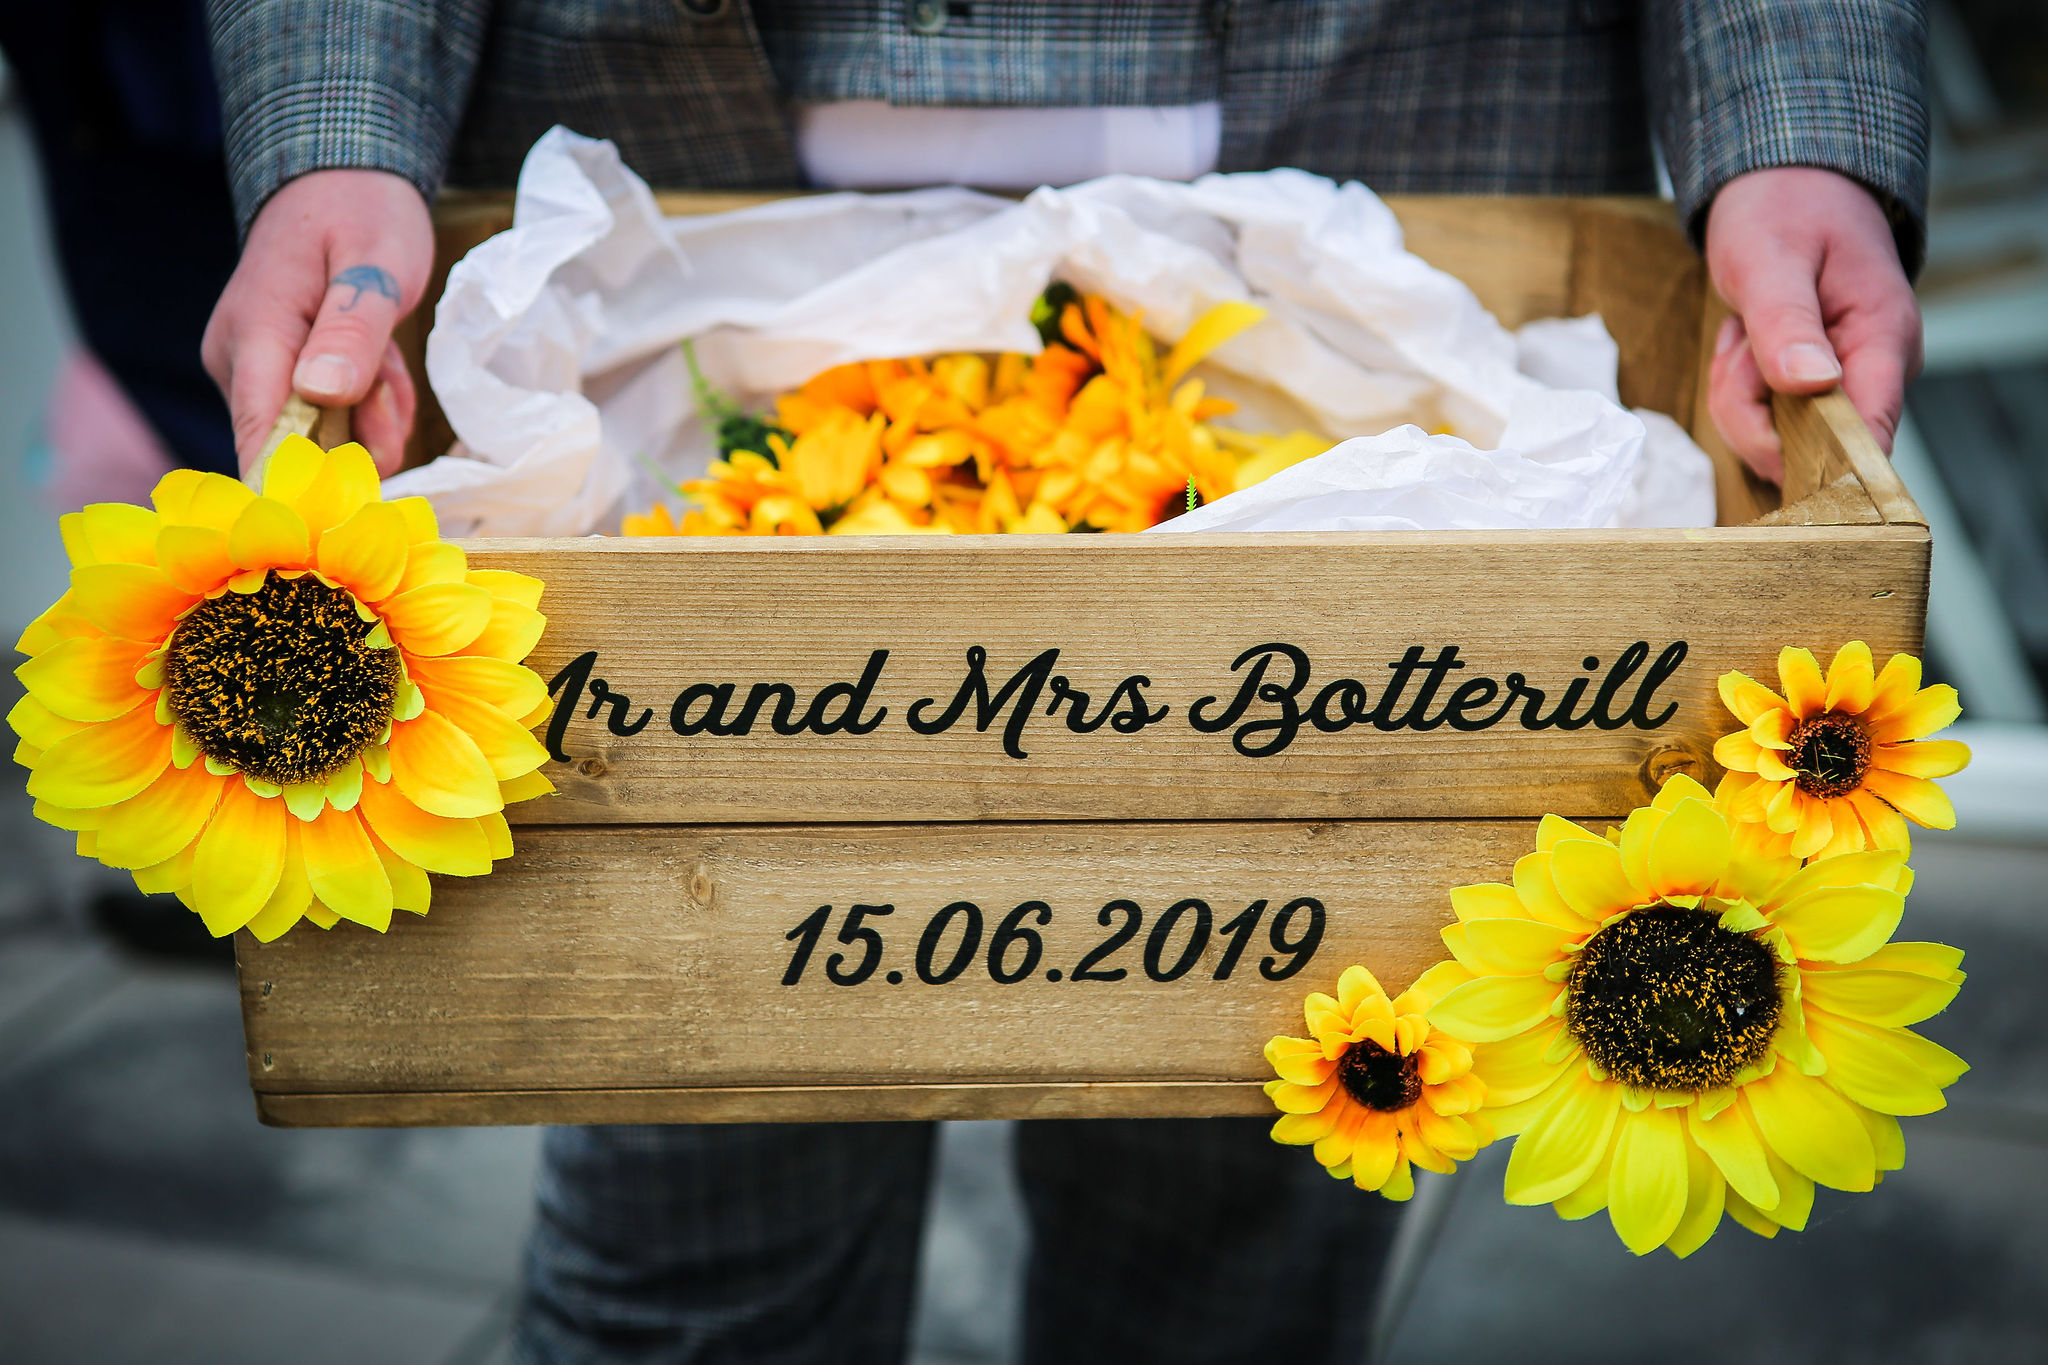 Harriet&Rhys Wedding - Magical sunflower wedding -wooden mr and mrs crate with sunflowers